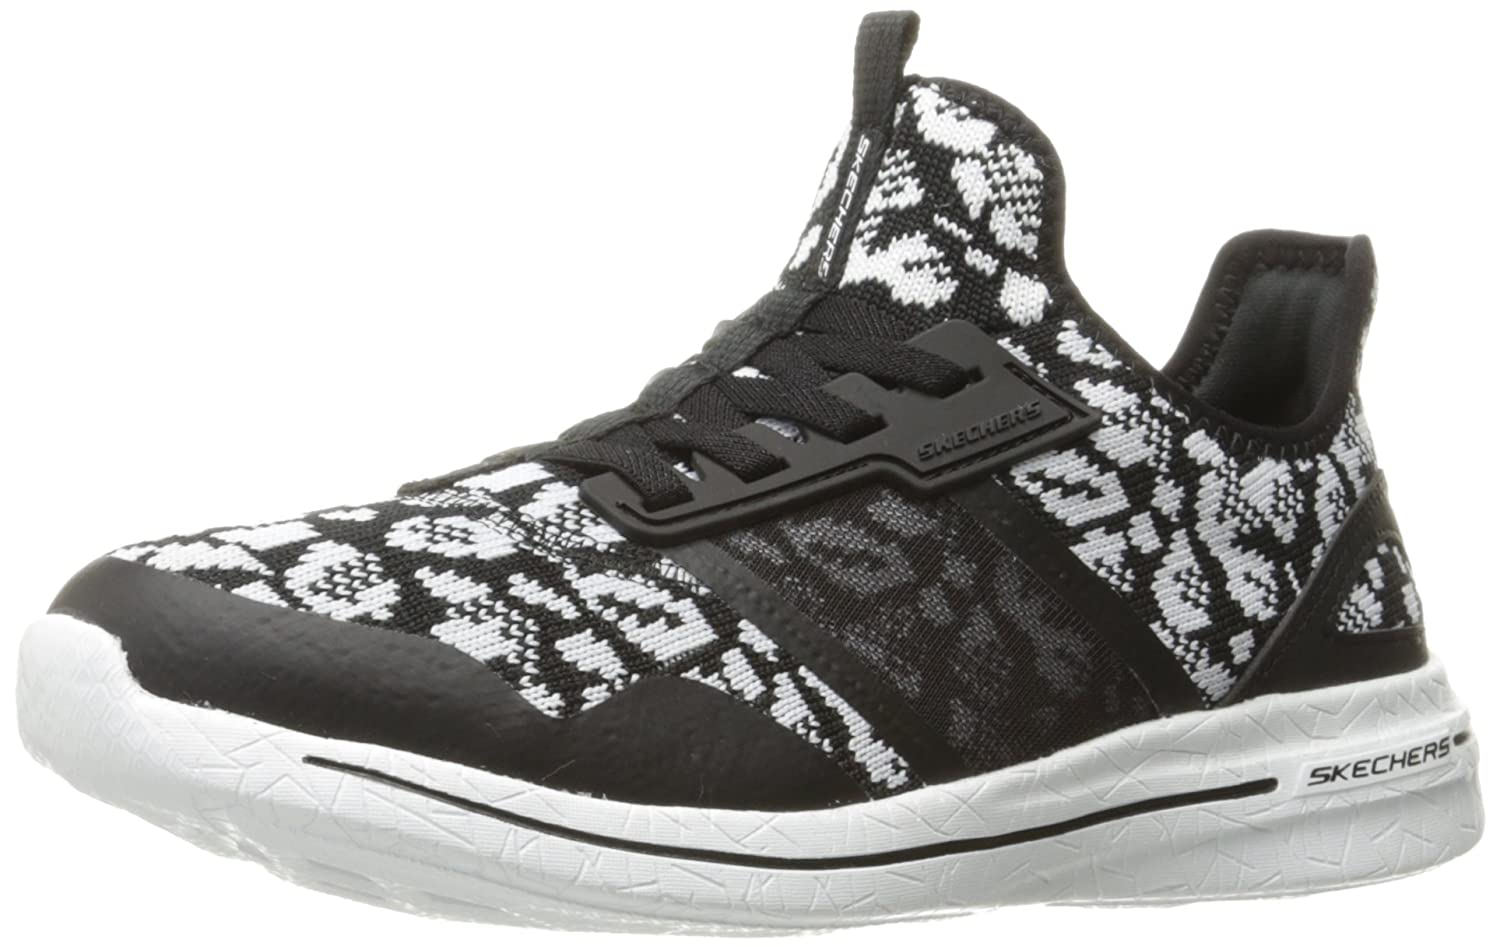 916eac4c83 Amazon.com | Skechers Women's Burst 2.0 Game Changing Fashion Sneaker |  Fashion Sneakers